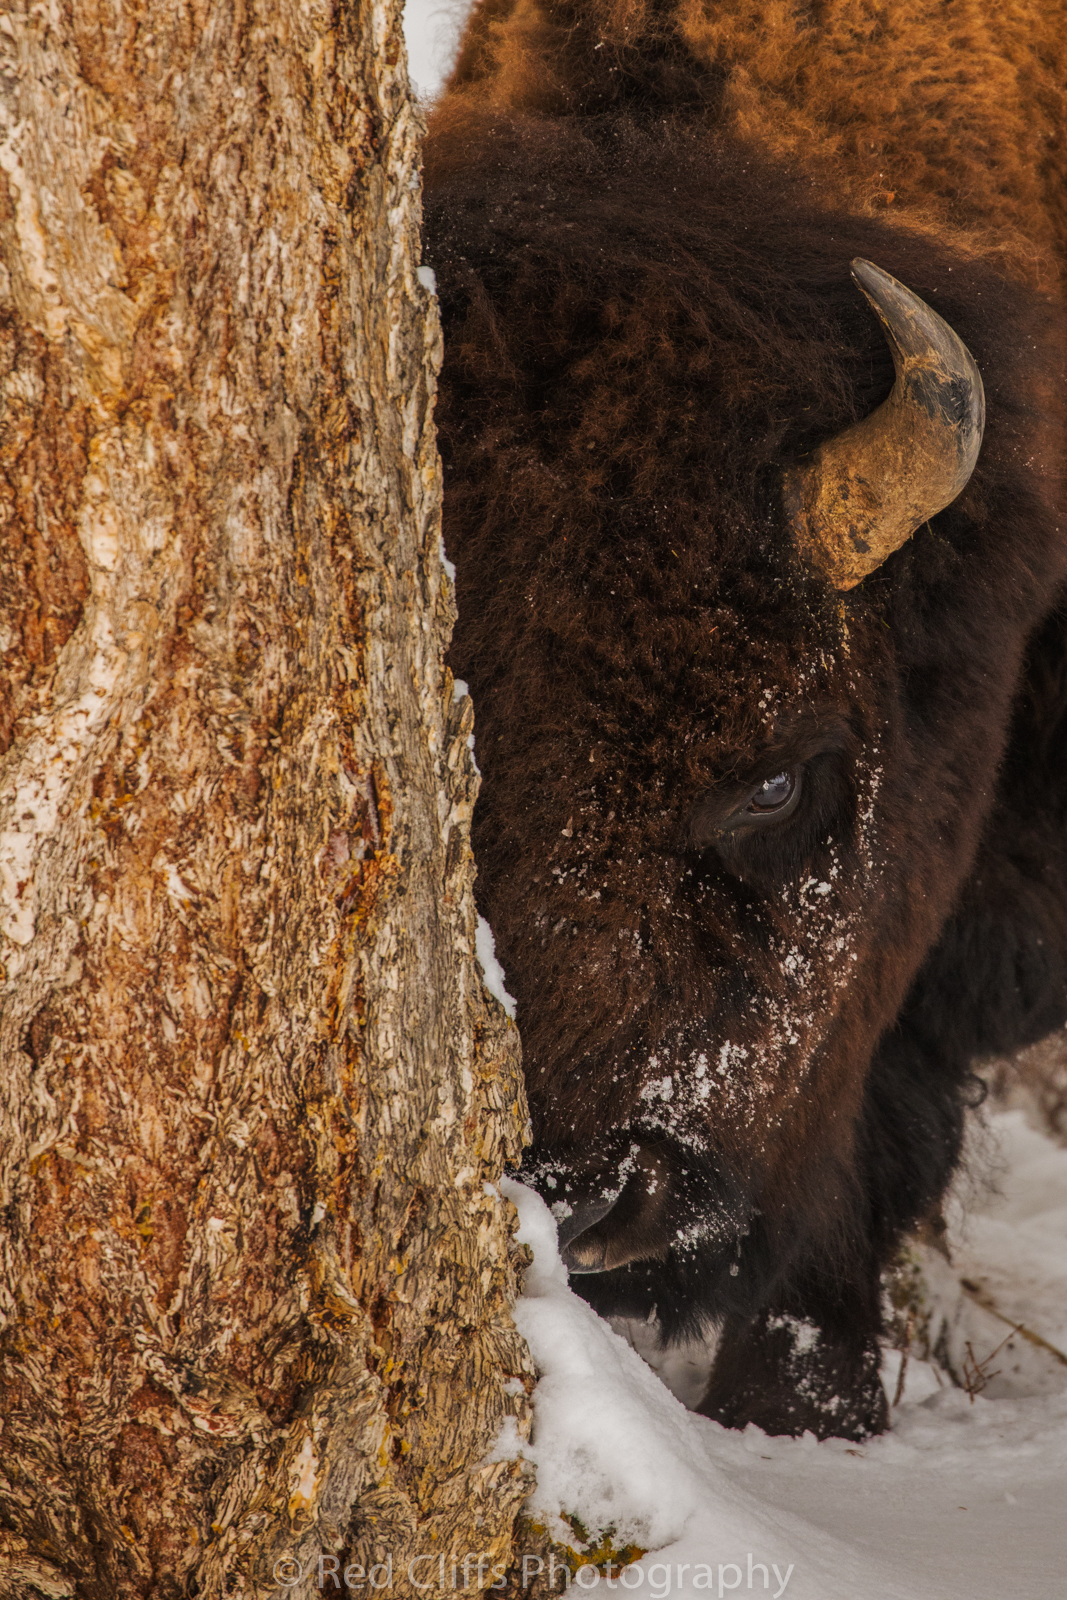 Bison watching me after he had been scratching on this tree.